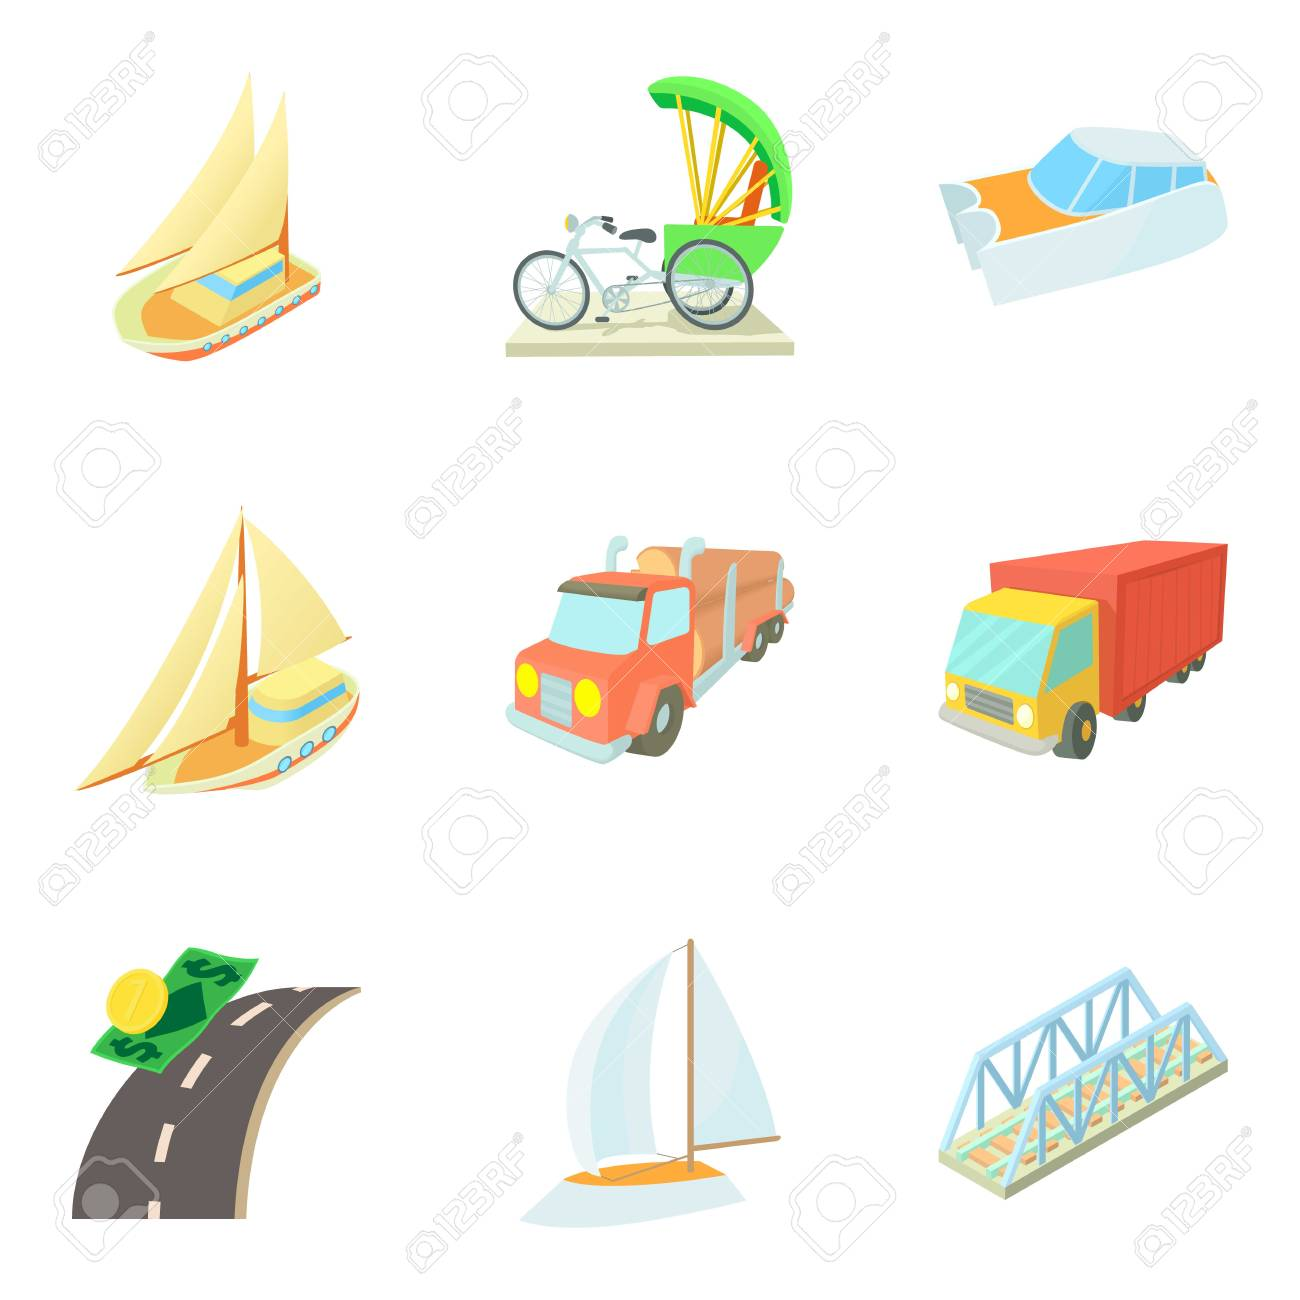 Means of transportation icons set, cartoon style vector illustration - 97700155